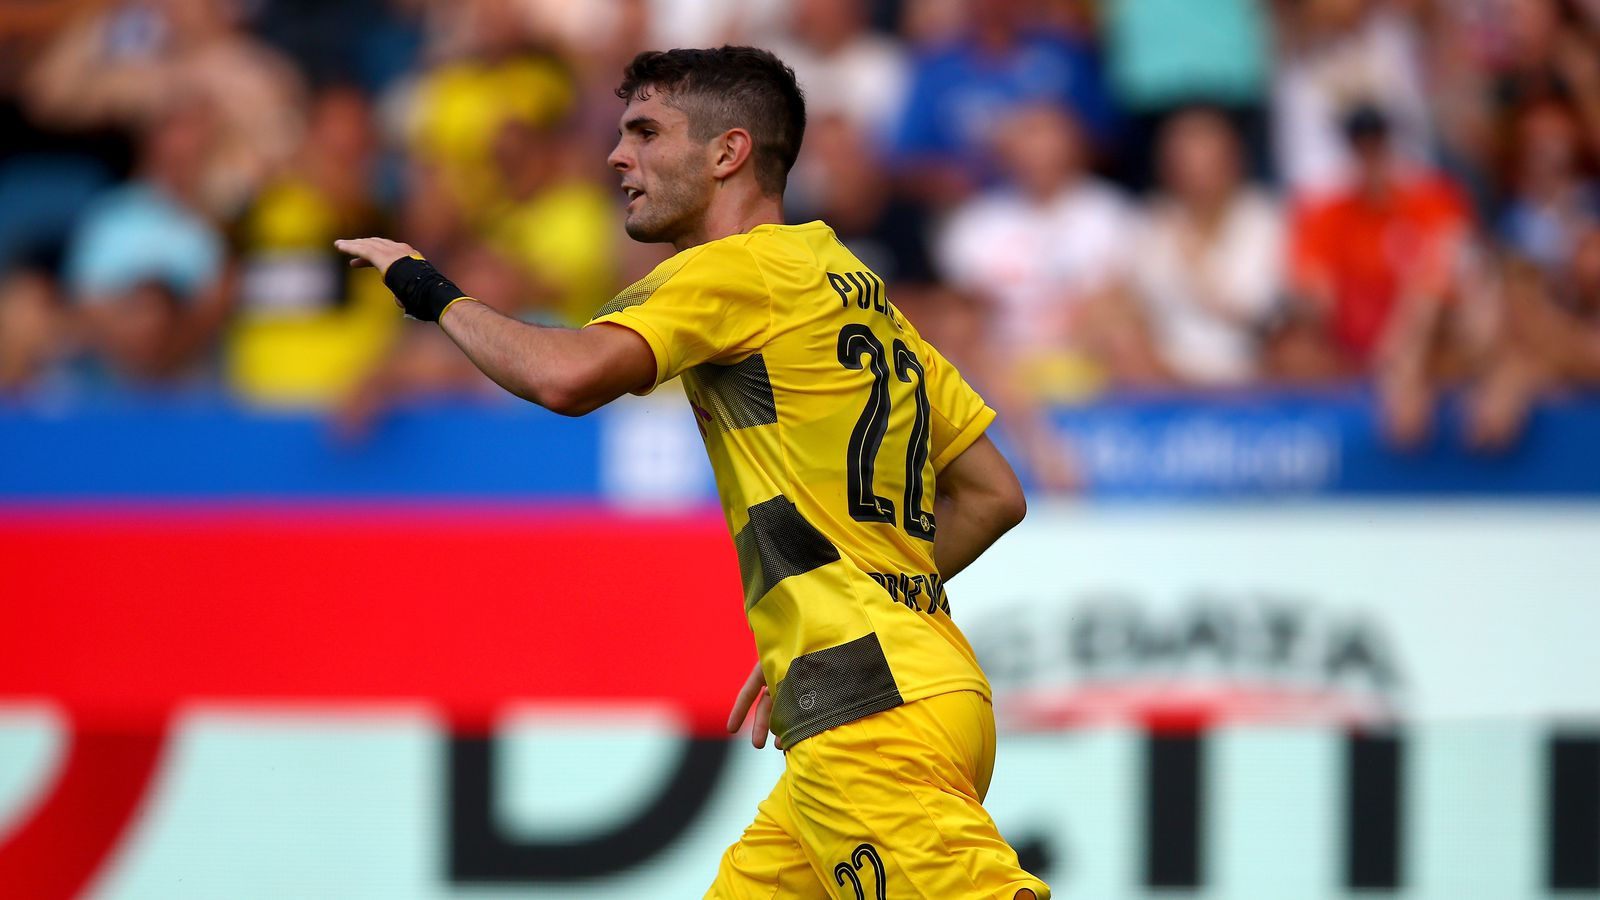 Dortmund Vs Hertha Live Stream